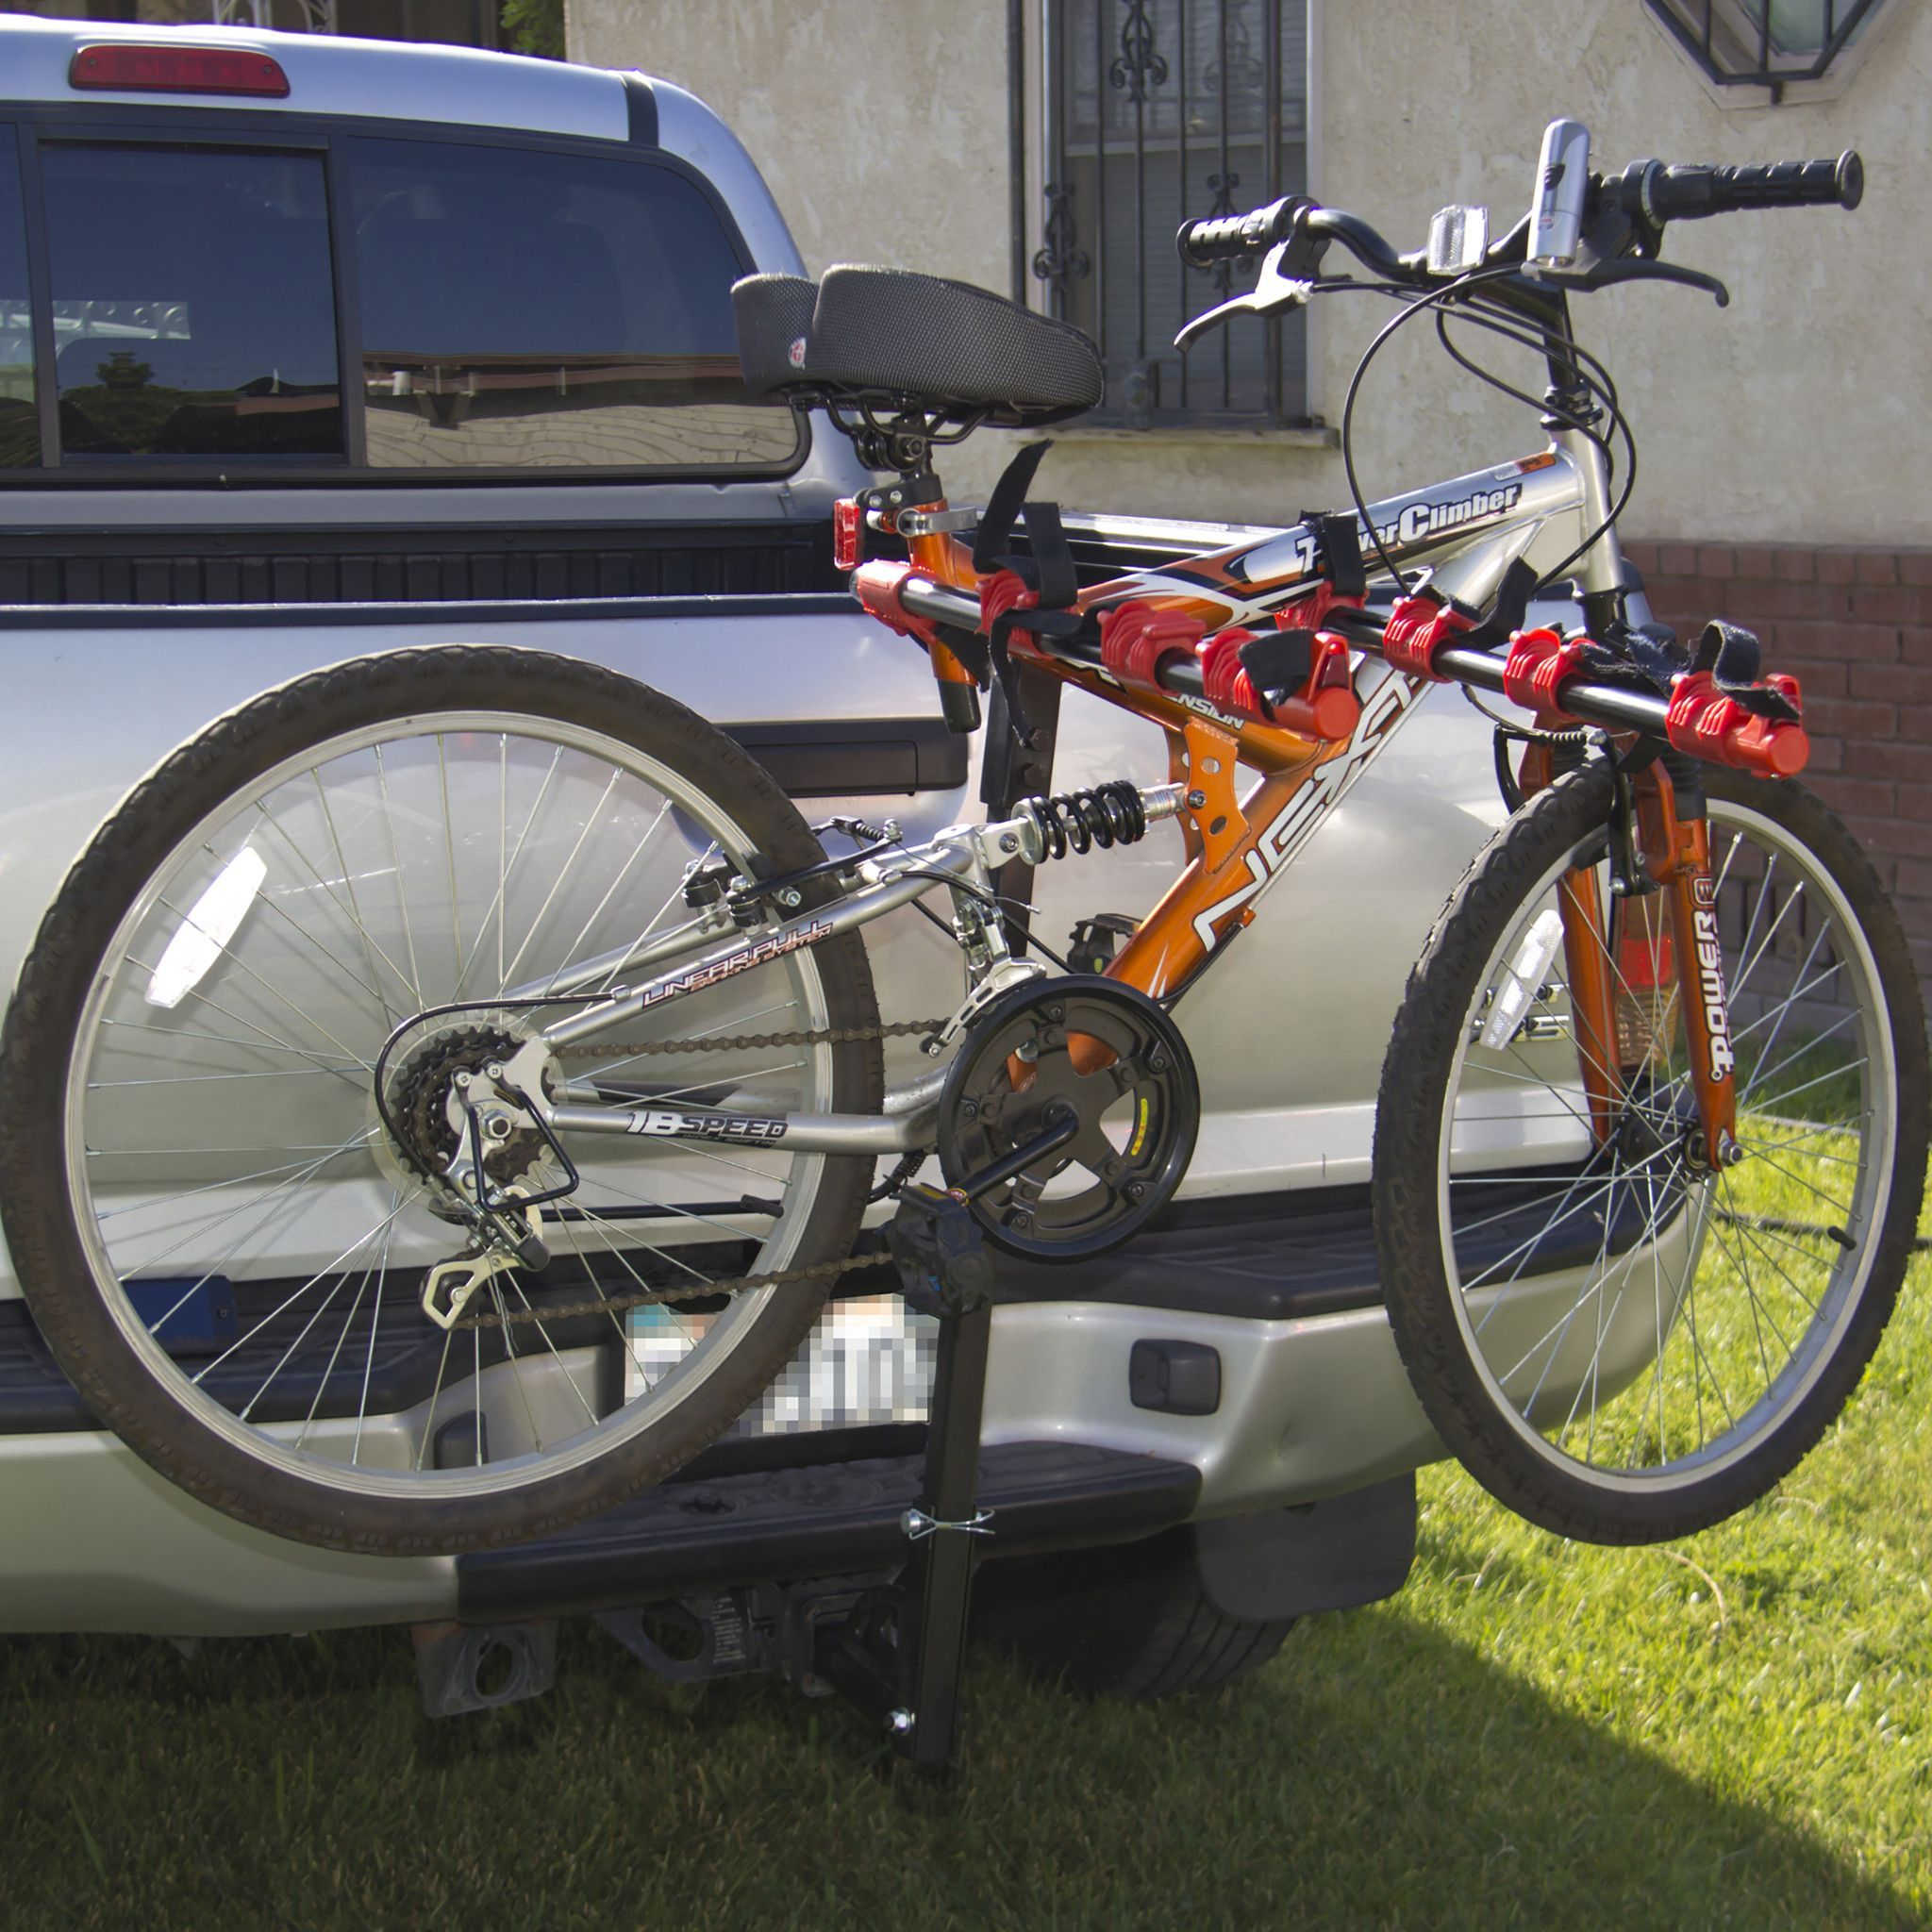 Supports Up To 4 Bikes Fits Most Cars Trucks Suvs Or Minivans With A 2in Or 1 1 4 Receiver Capable Of Fitting A Wide Ar Mini Van Car Bike Rack Bicycle